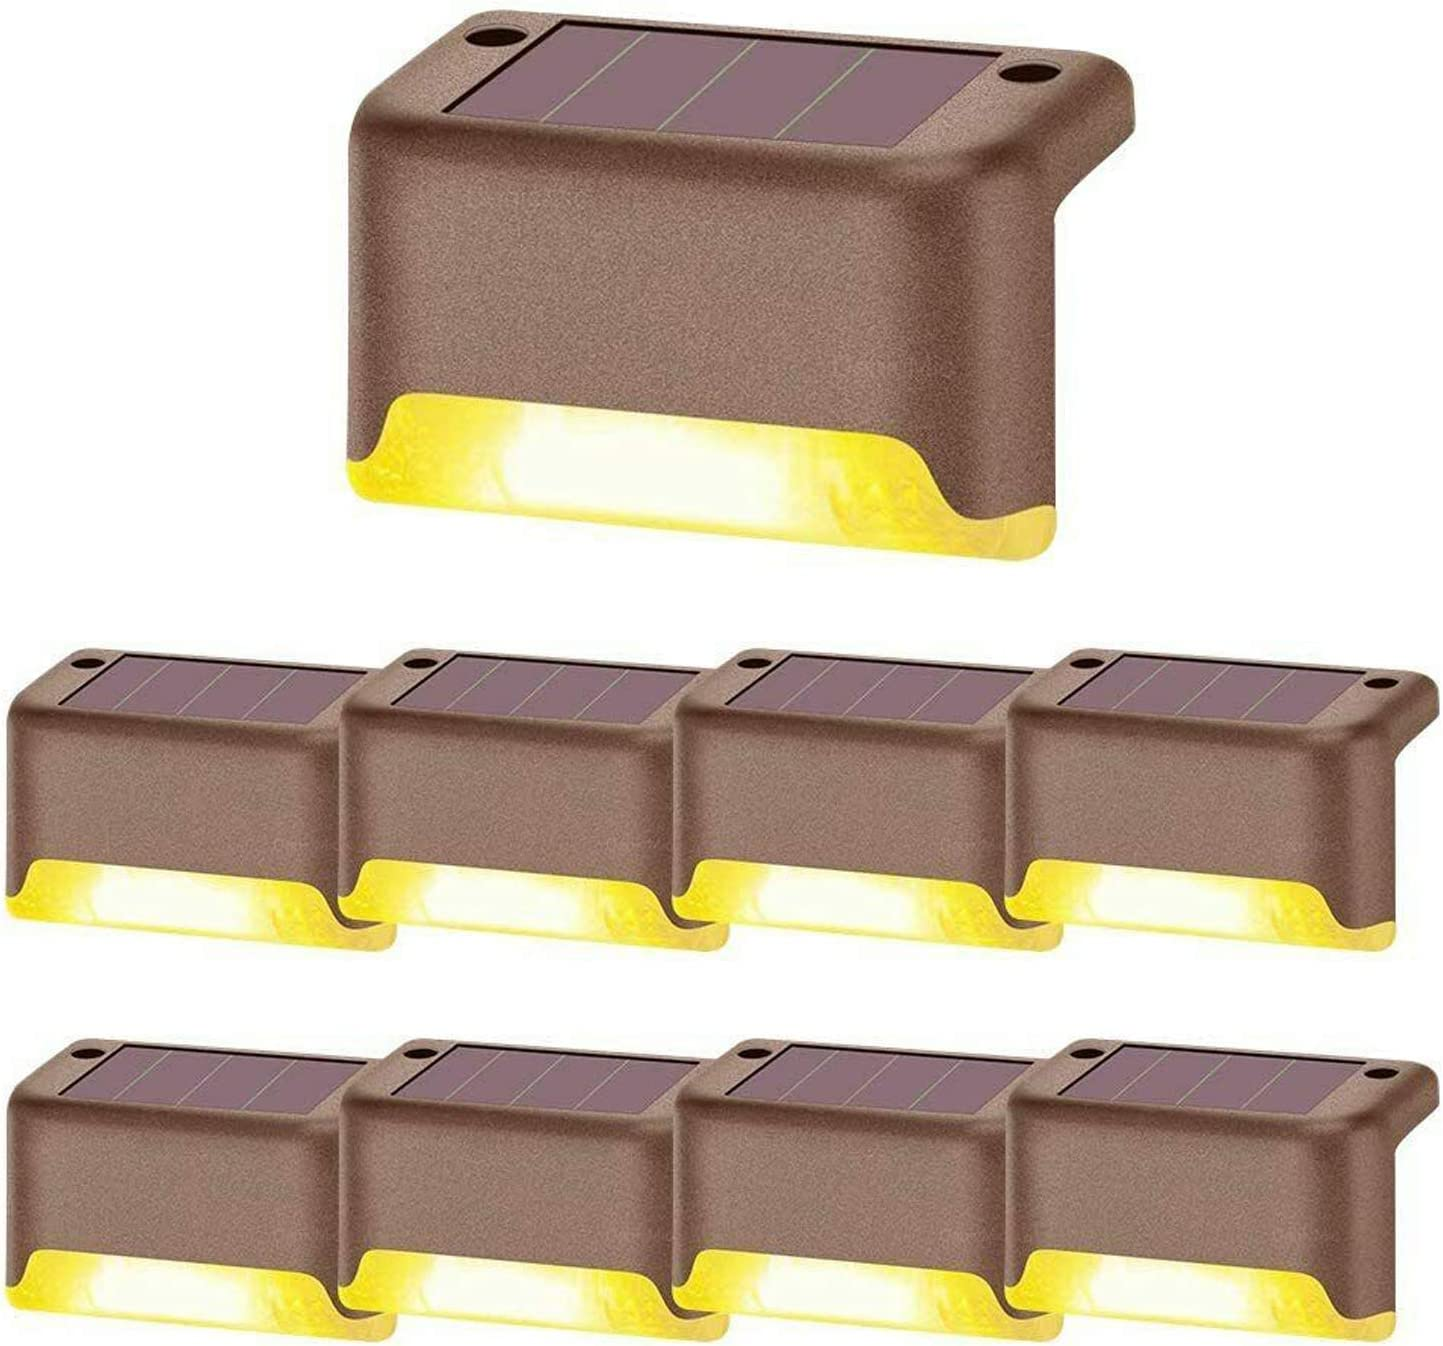 Solar Deck Lights Outdoor, Waterproof LED Solar Powered Step Lamp, Warm White Decorative Lighting Auto On/Off for Stairs Garden Patio Fence Yard (8Pcs)